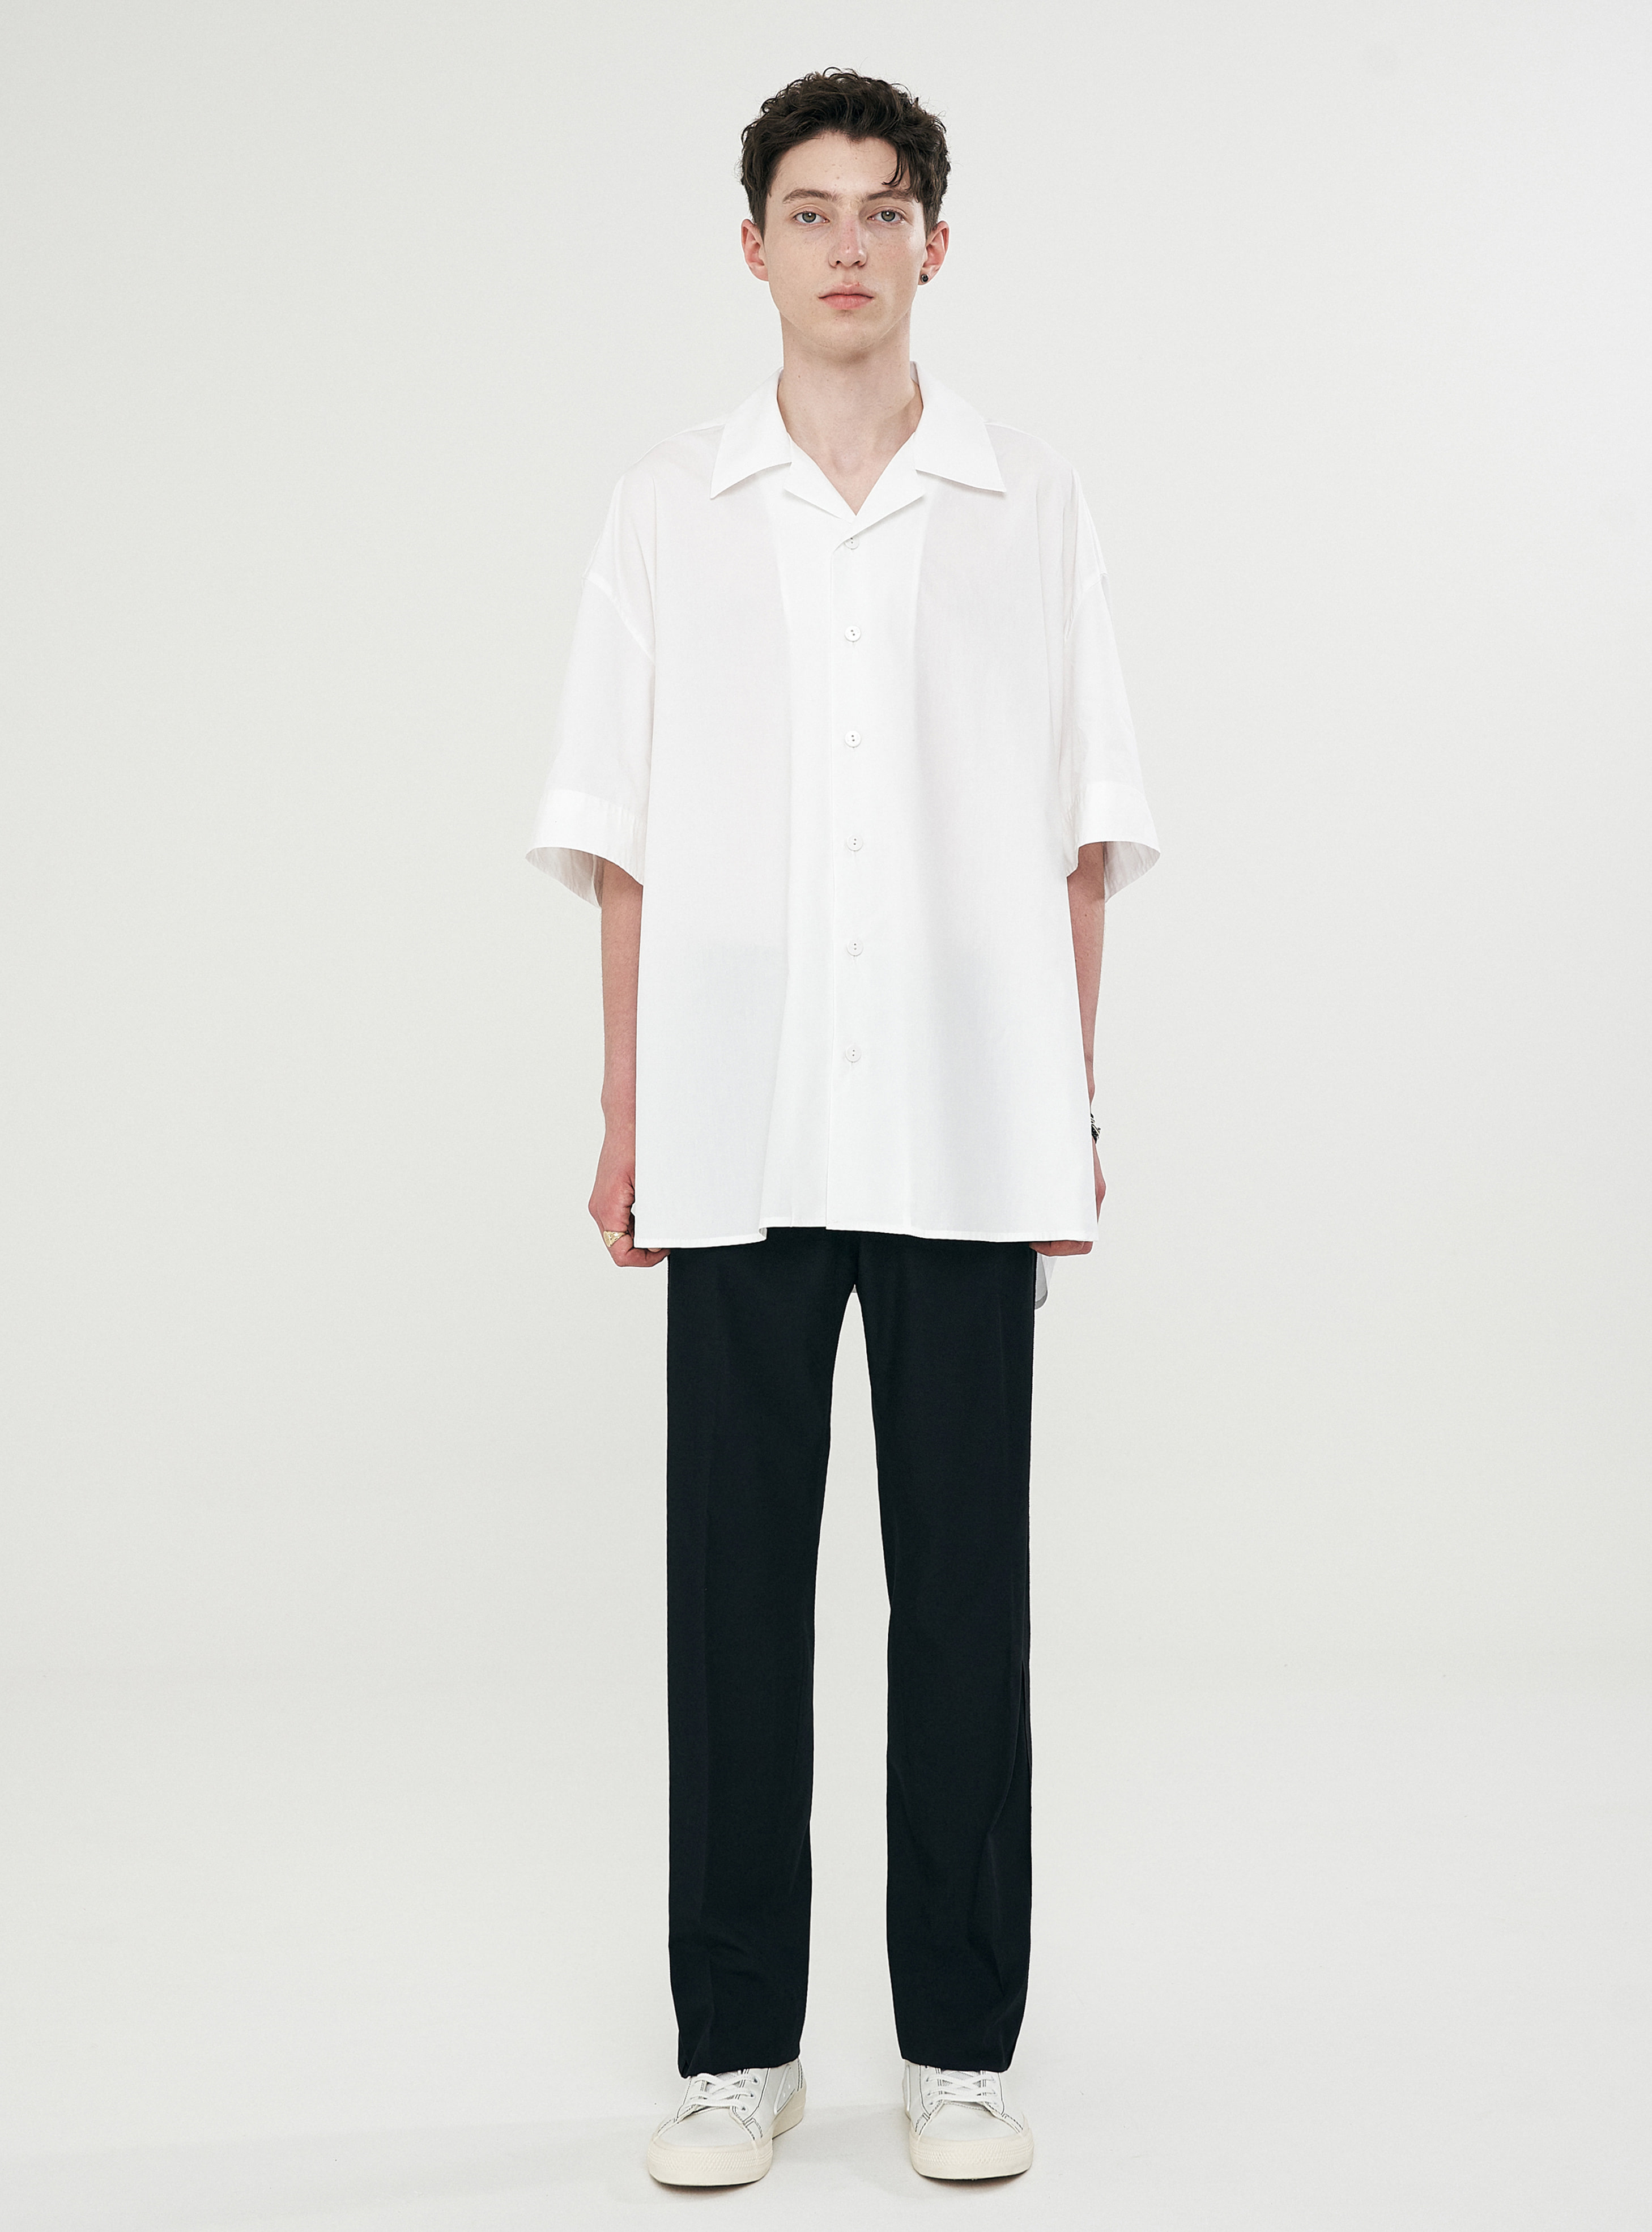 OPEN COLLAR AVANTGARDE SHIRT WHITE